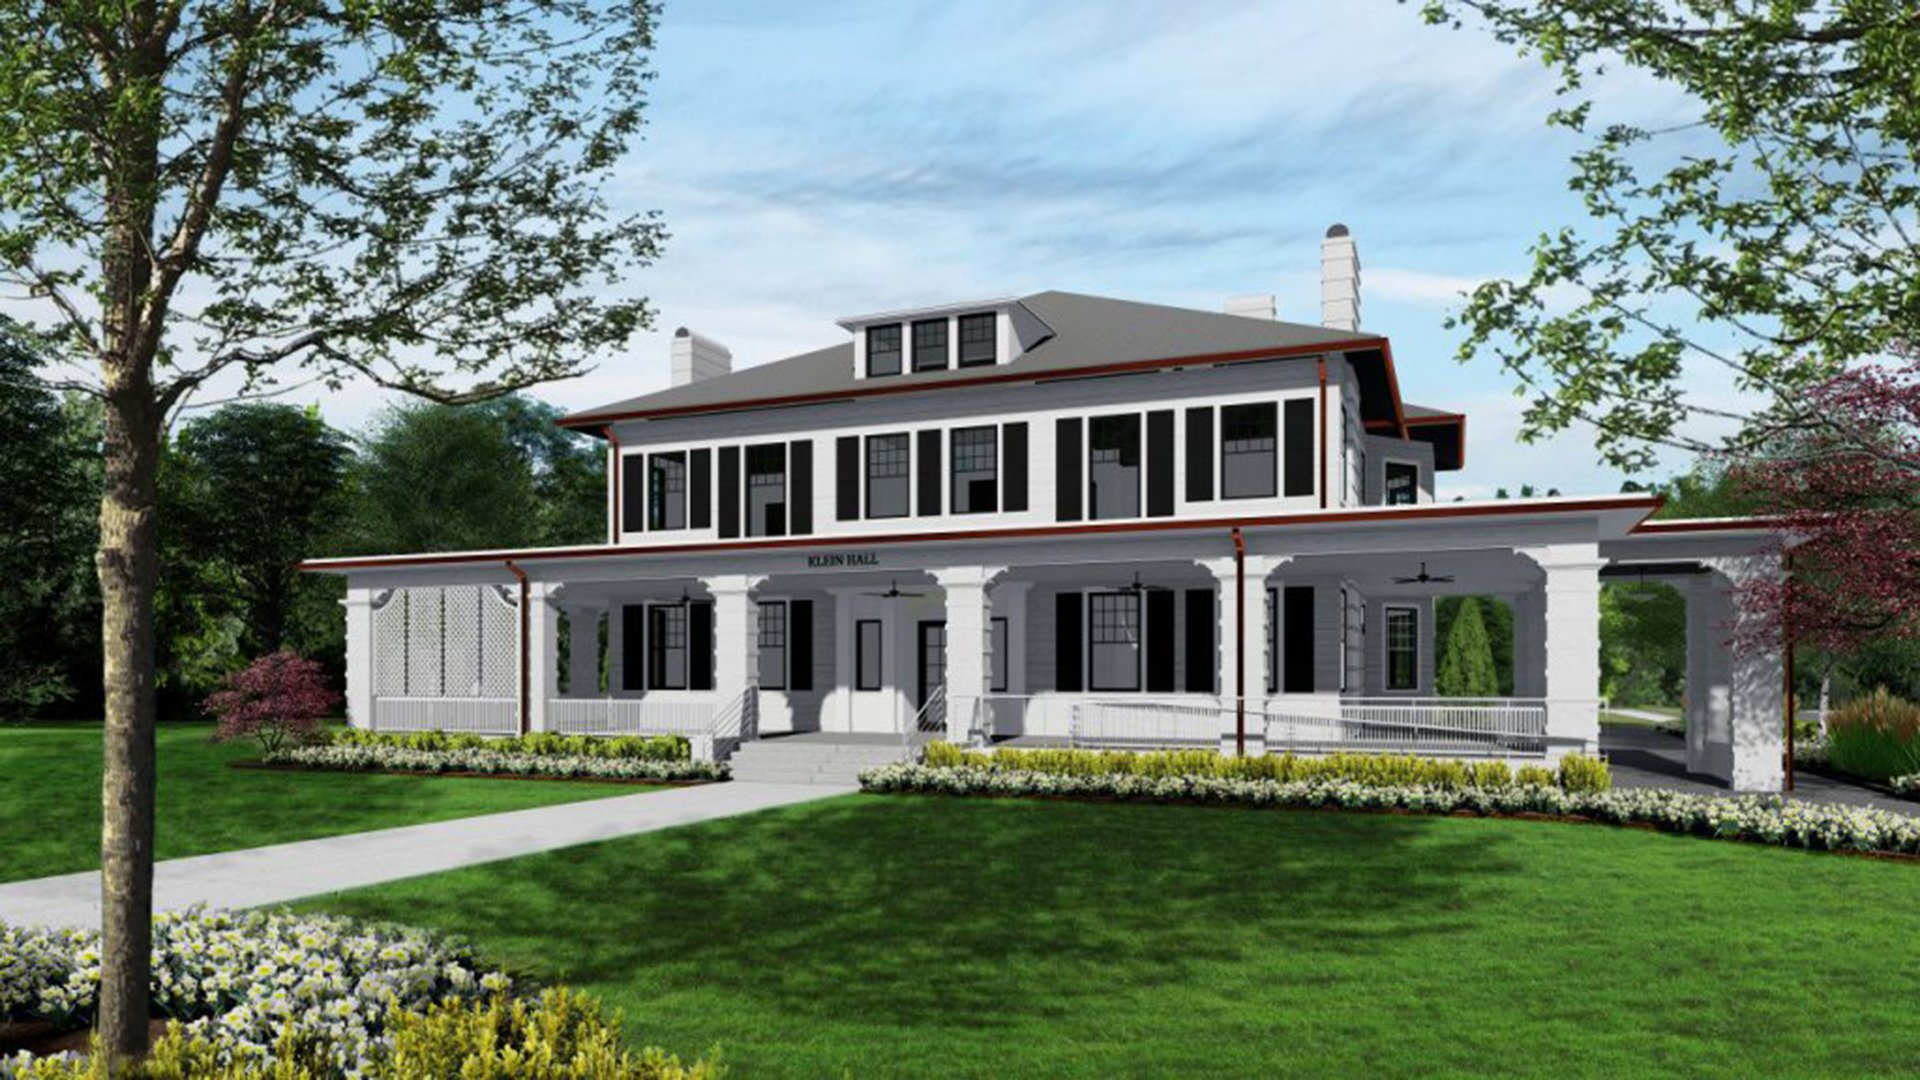 Cleveland Hall, Rendering